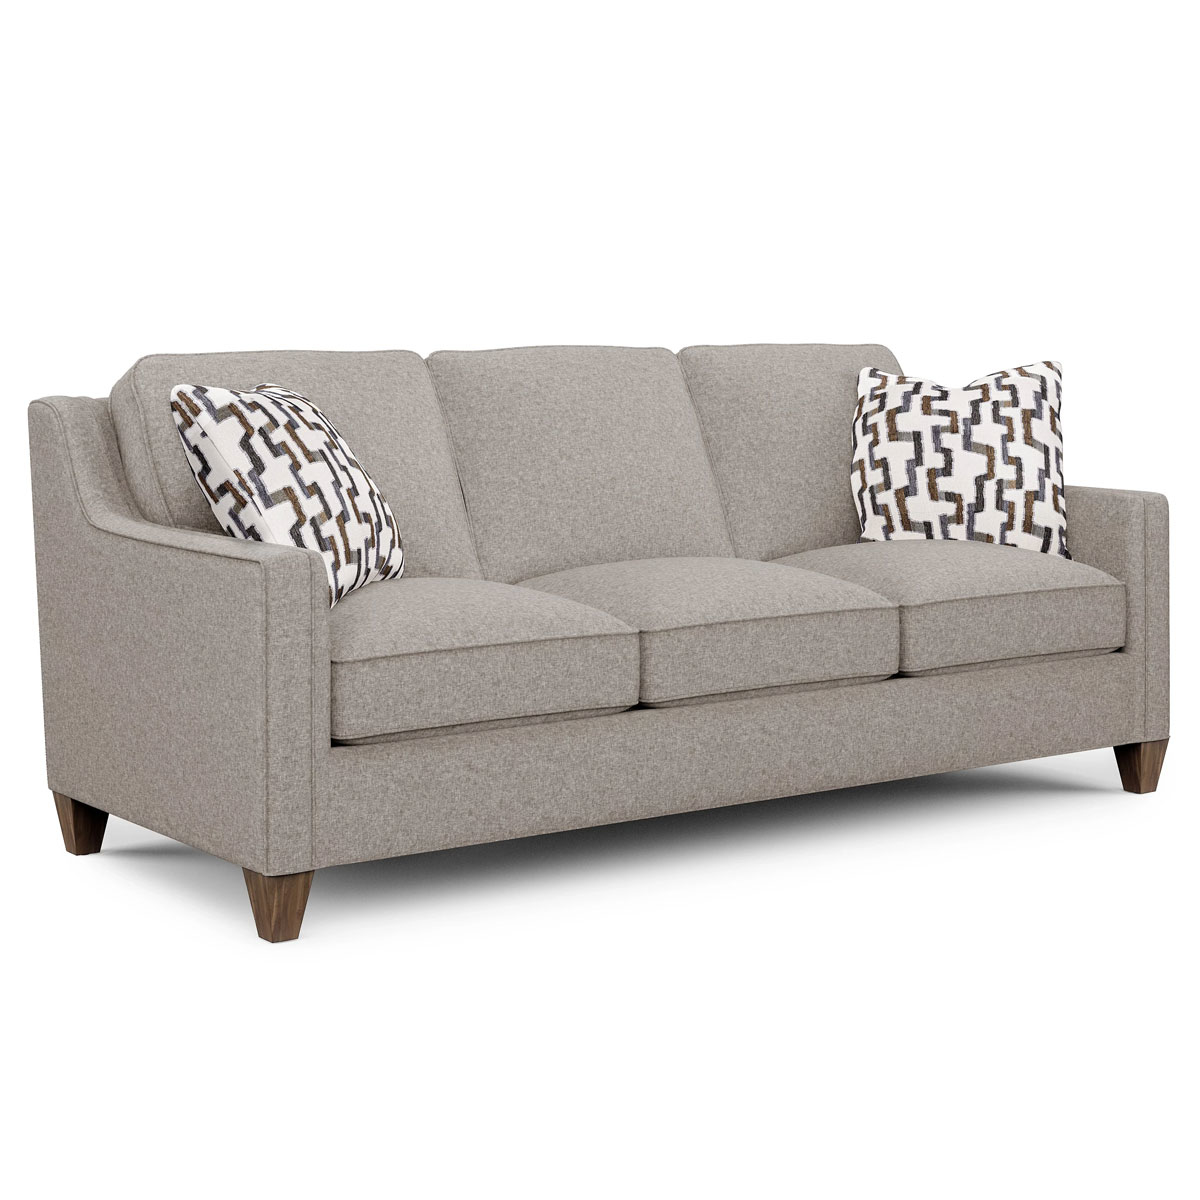 Picture of FINLEY QS SOFA